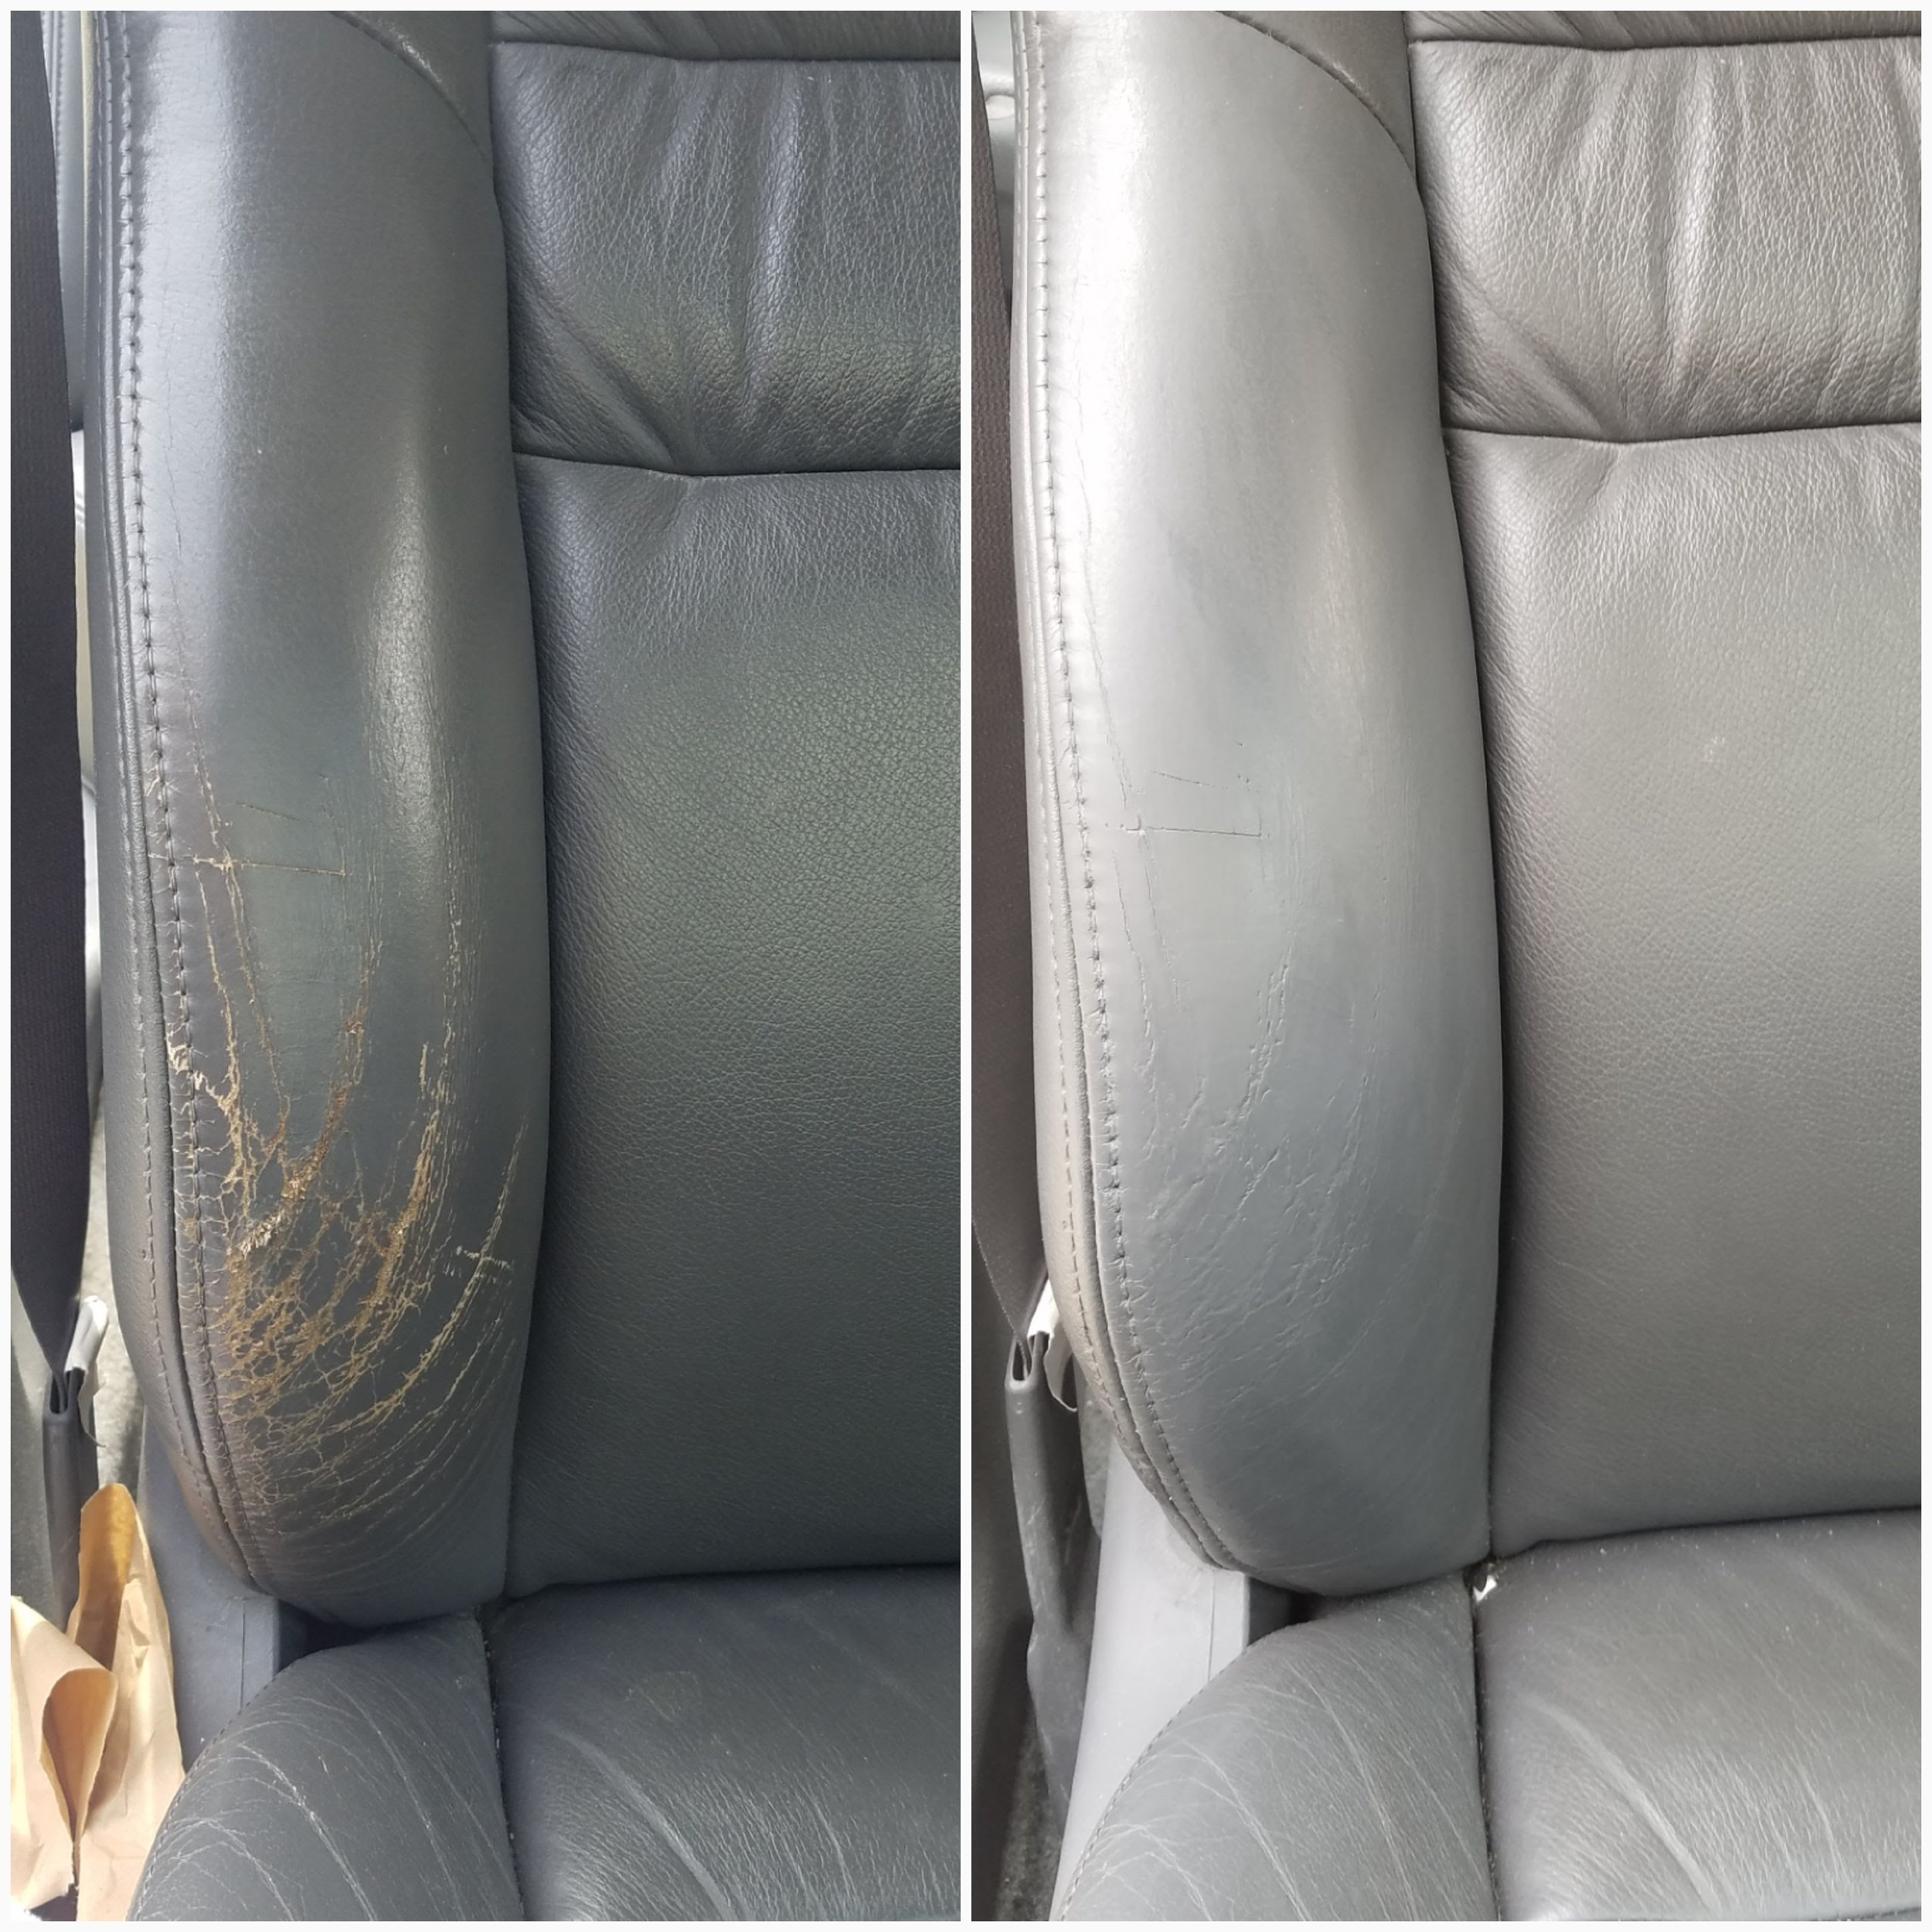 2005 Honda Accord Leather Repair